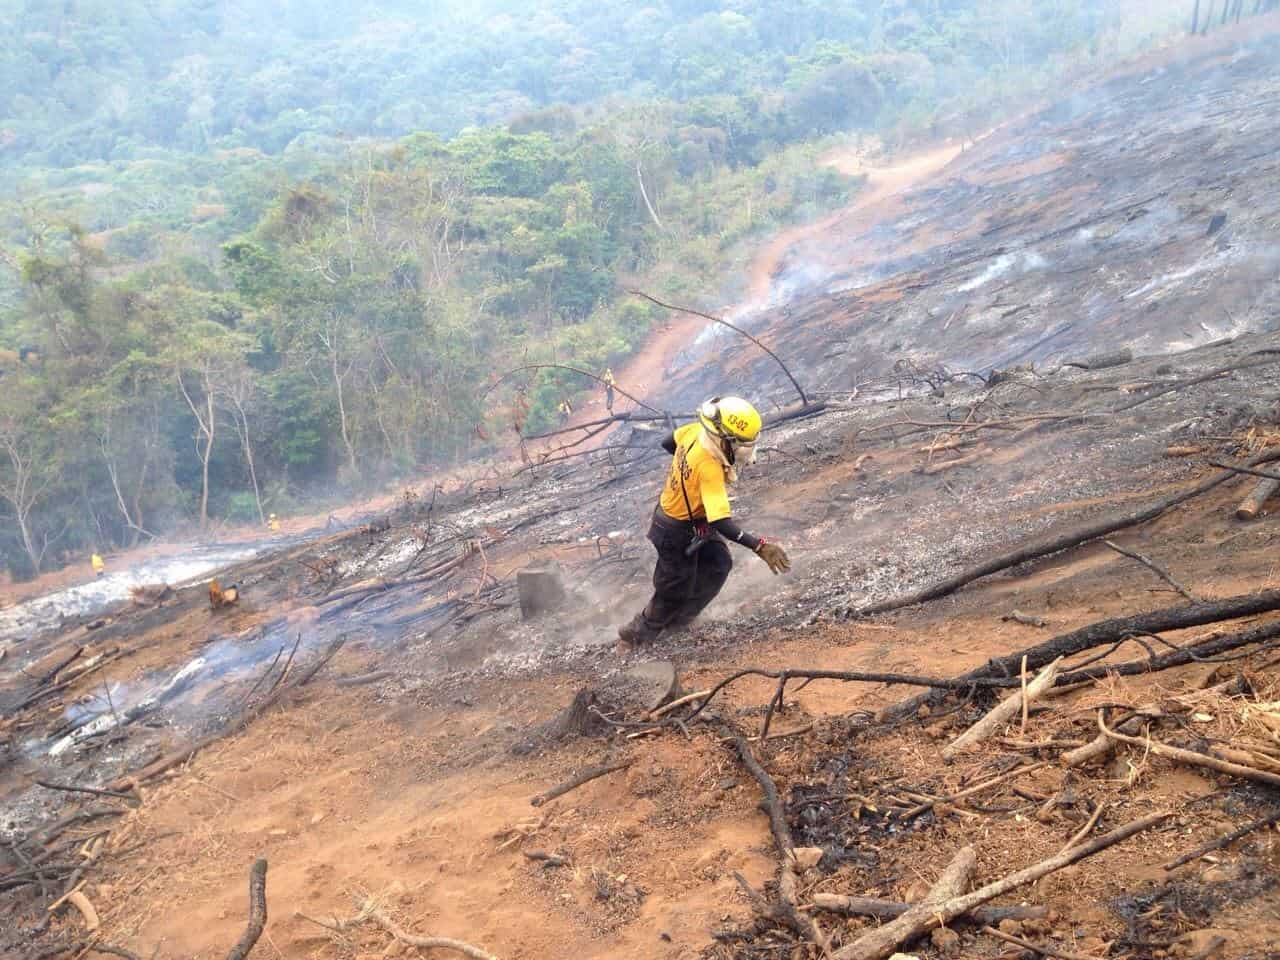 A firefighter on a burnt patch of land.